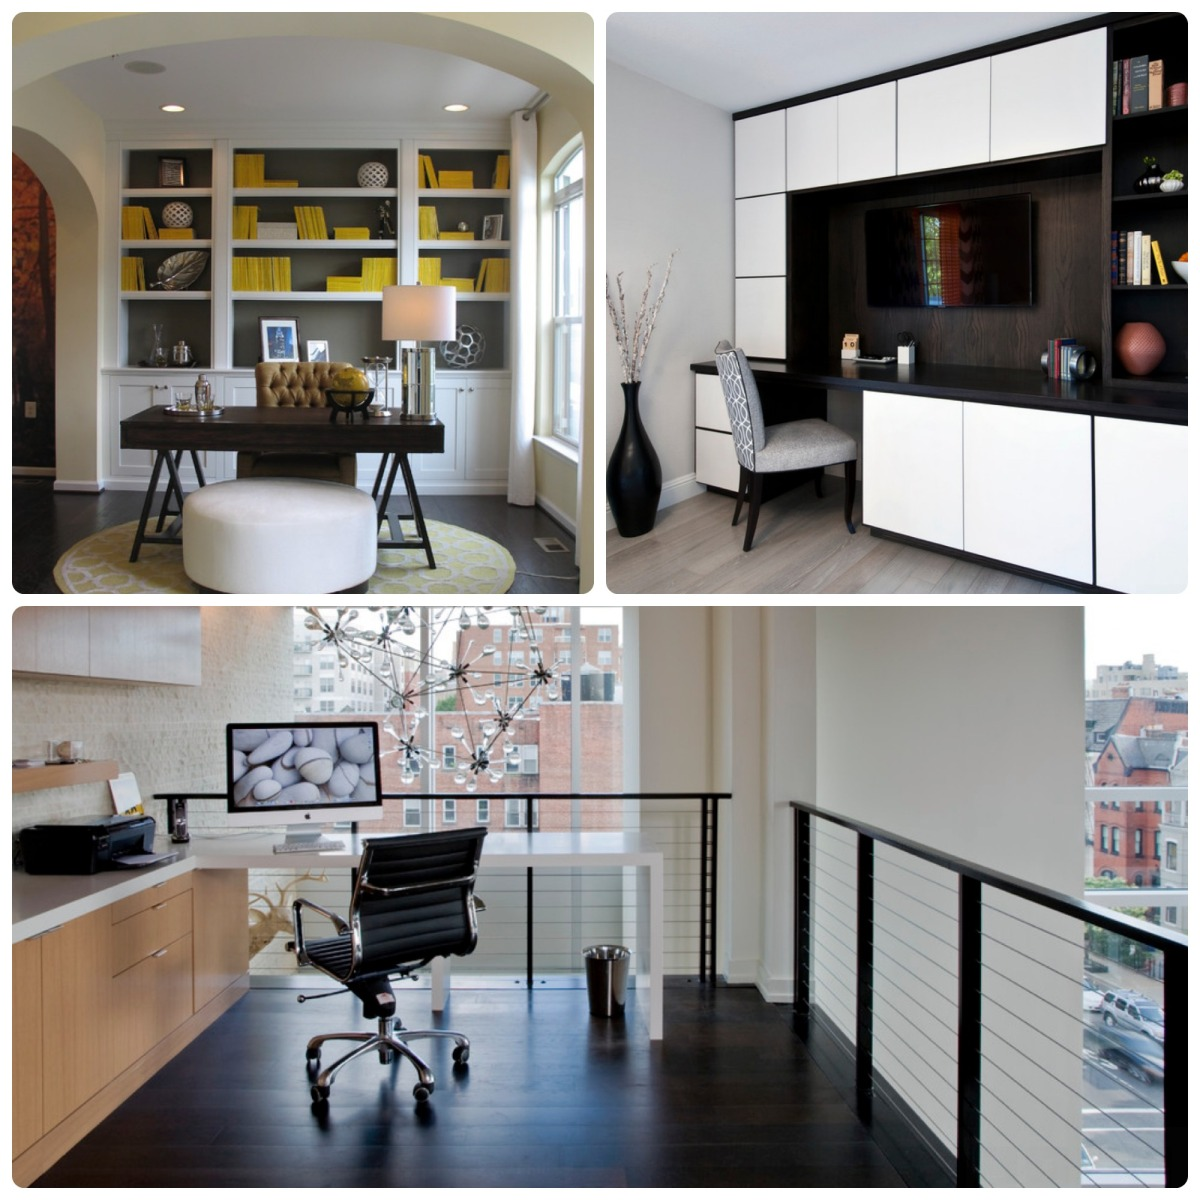 Home Office Design 2016: Ideas For Decorating Your Home Office